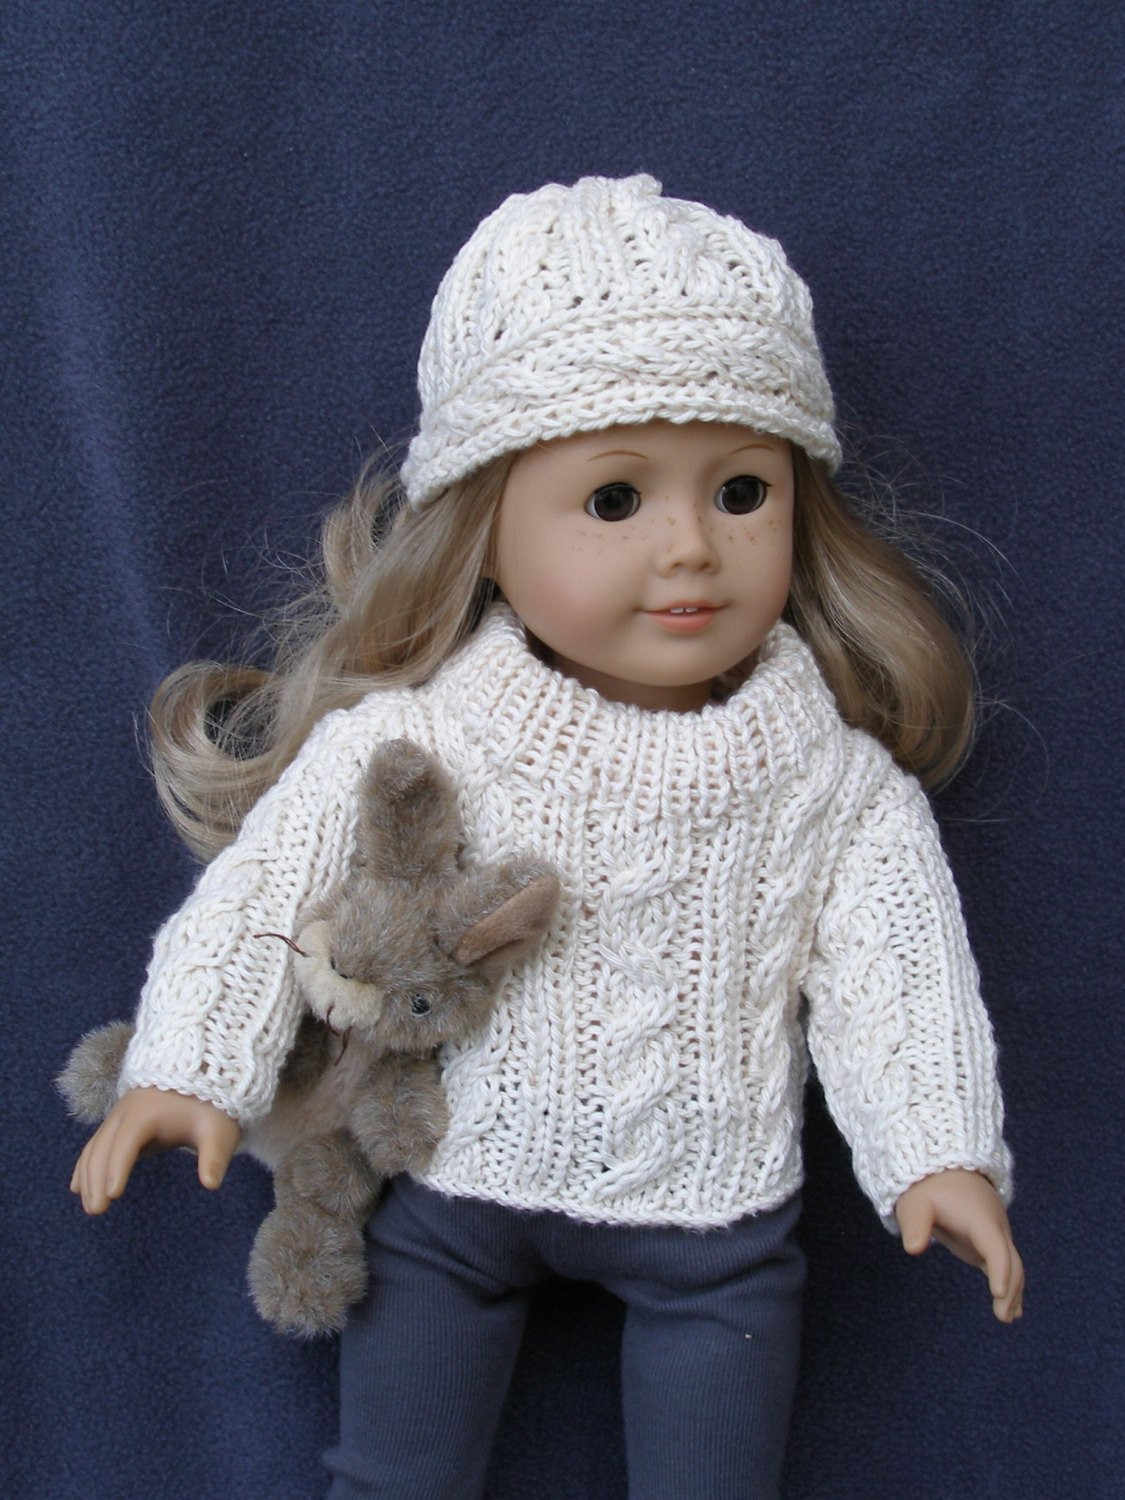 Awesome Cables Cables Cables Doll Knitting Pattern From Knitted Doll Patterns Of Lovely 40 Models Knitted Doll Patterns